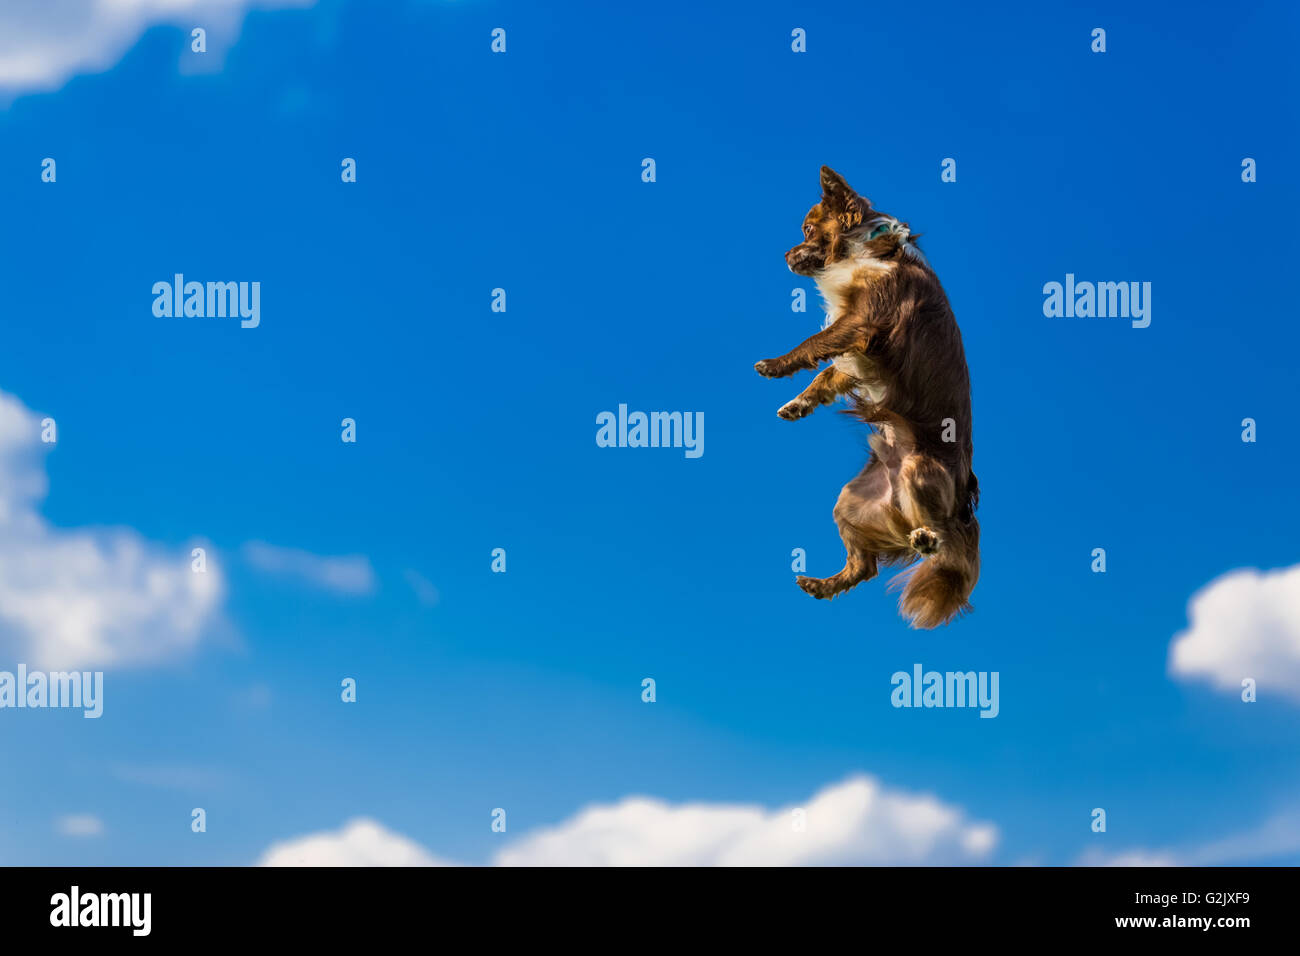 Chihuahua dog flying and jumping in the air - Stock Image